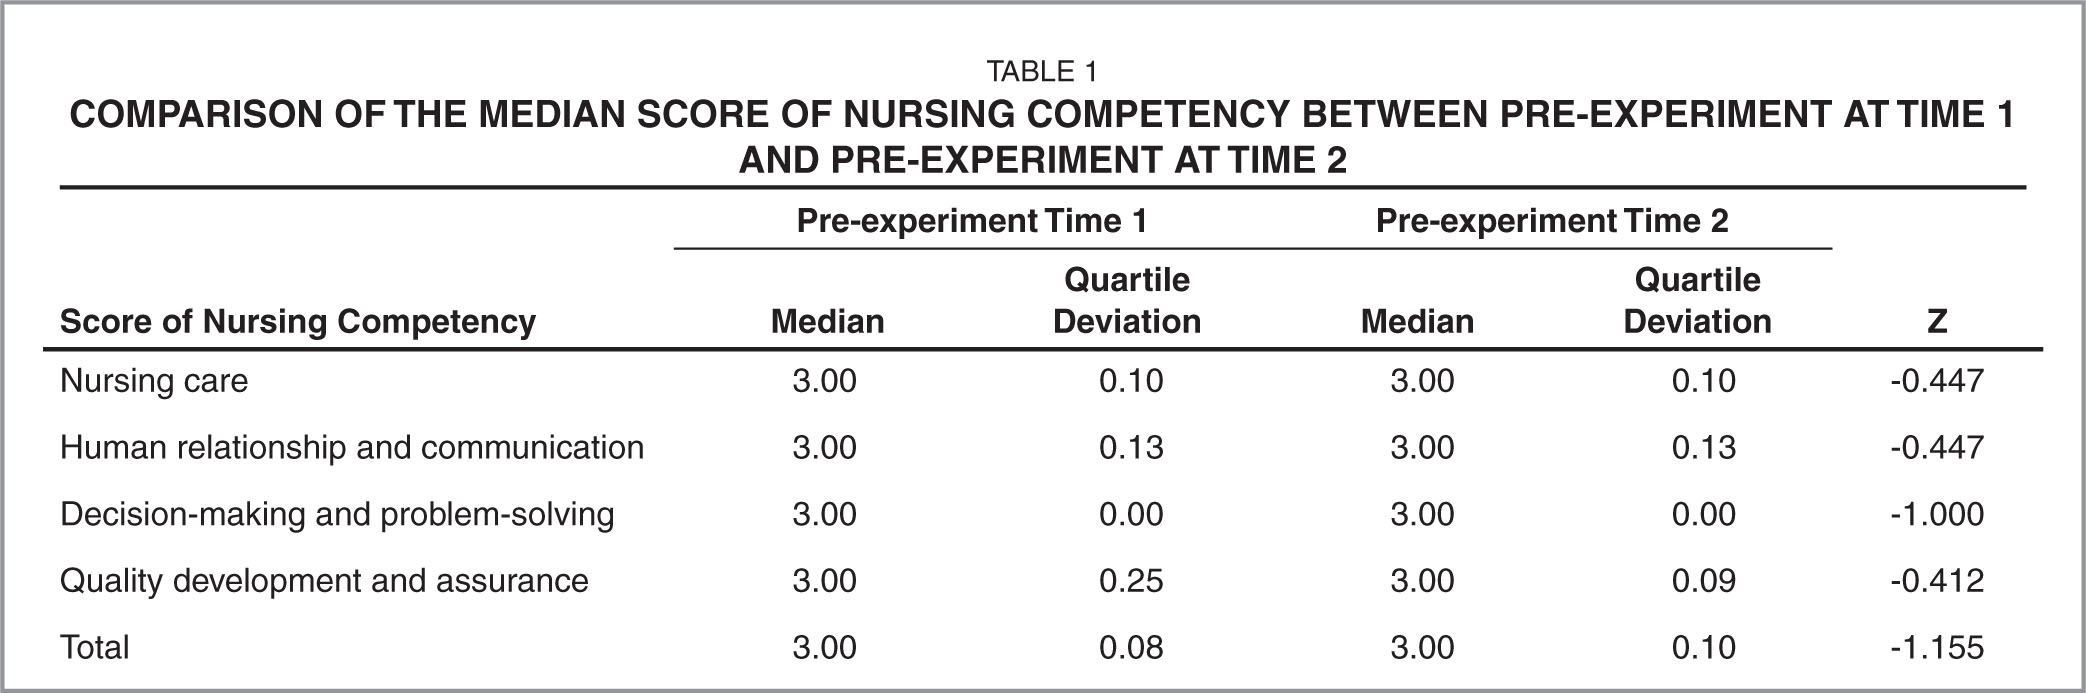 Comparison of the Median Score of Nursing Competency Between Pre-Experiment at Time 1 and Pre-Experiment at Time 2